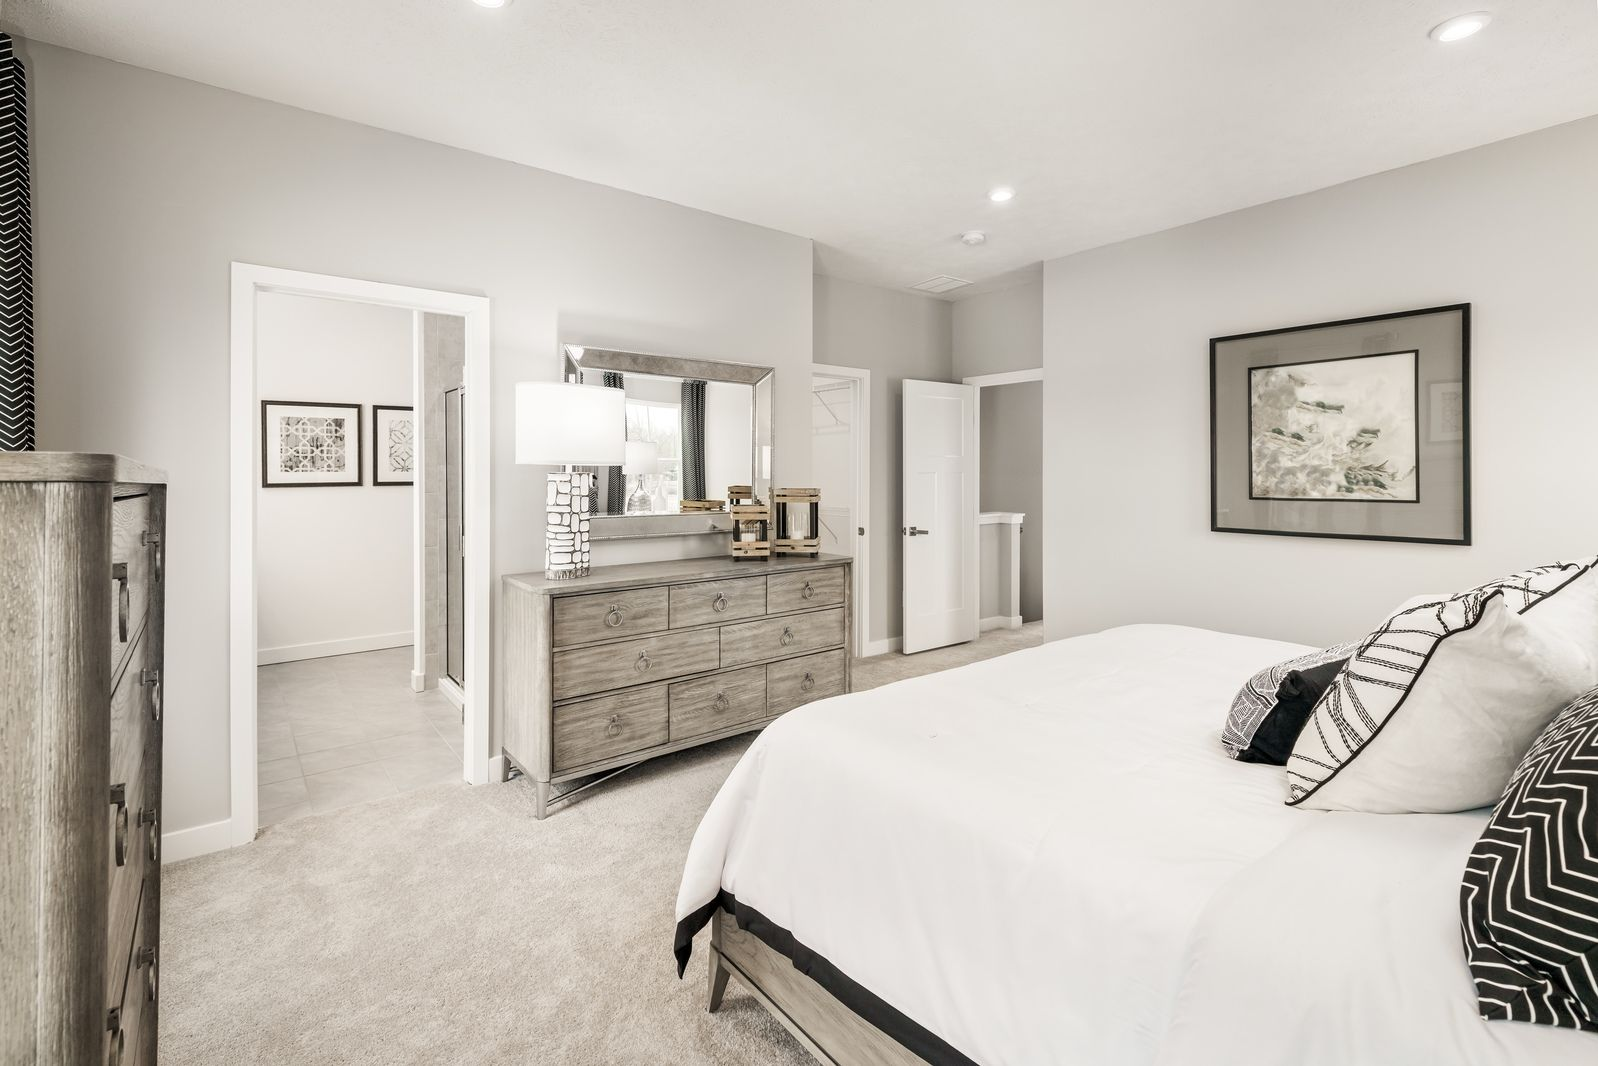 Bedroom featured in the Wexford w/ 4' Extension & Rec Rm By Ryan Homes in Akron, OH